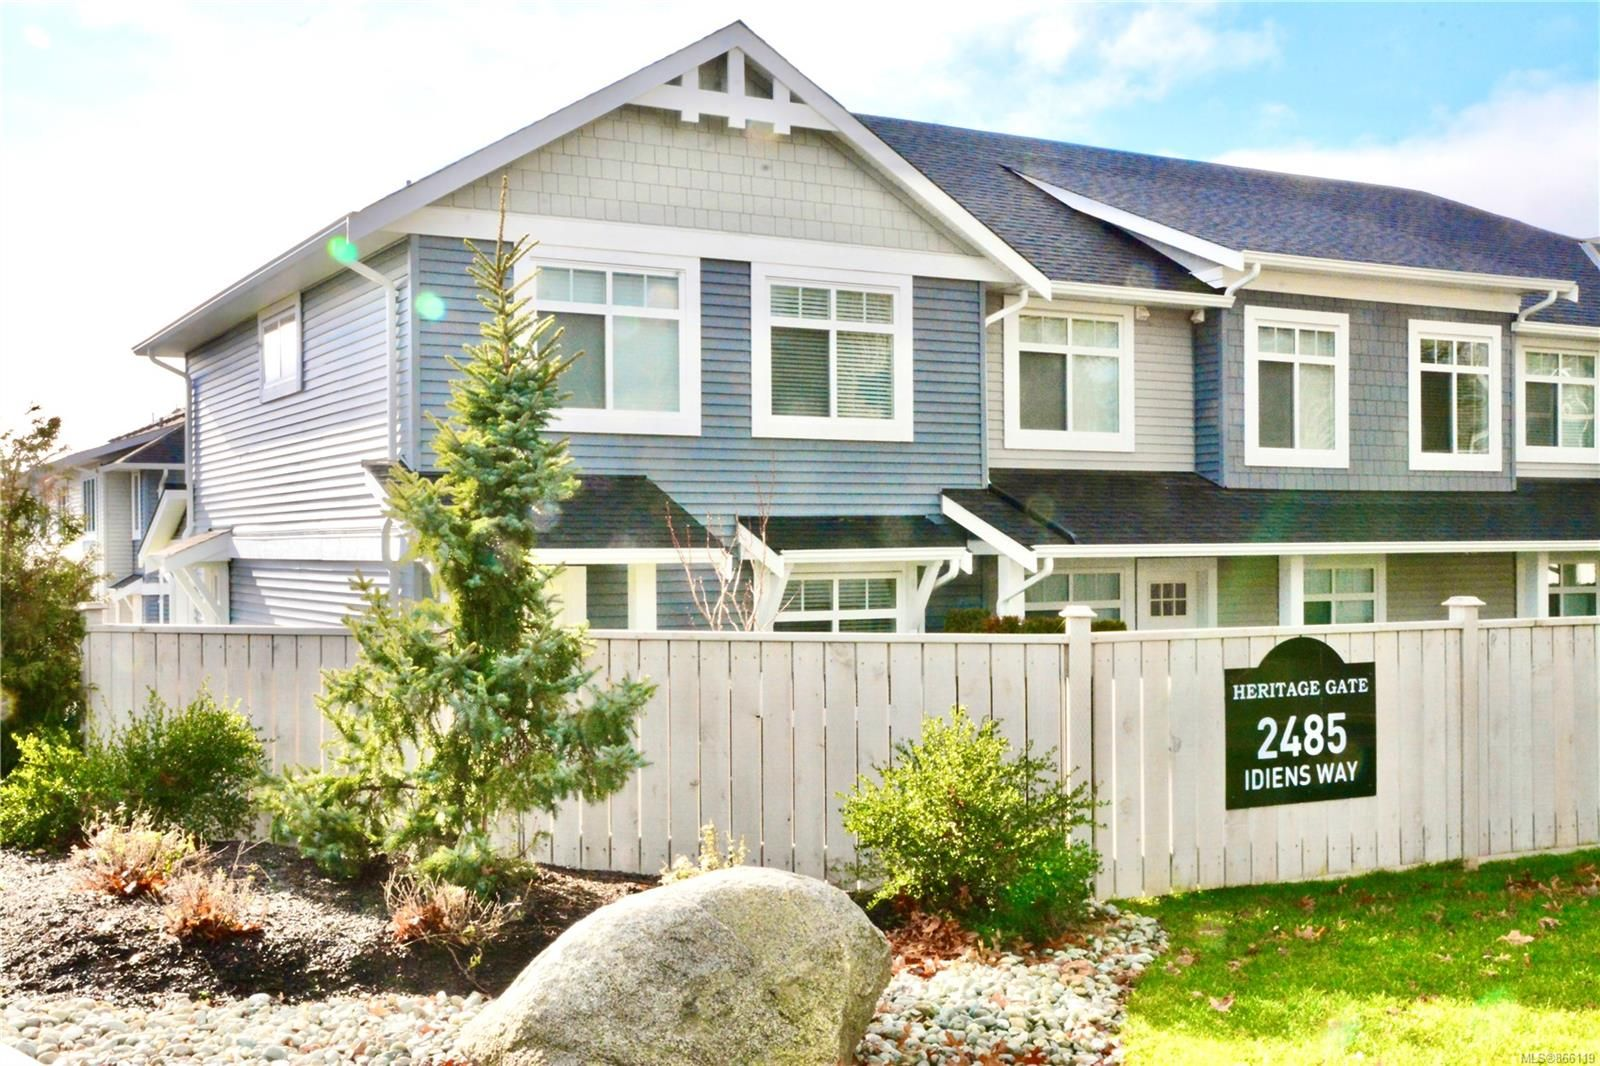 Main Photo: 101 2485 Idiens Way in : CV Courtenay East Row/Townhouse for sale (Comox Valley)  : MLS®# 866119